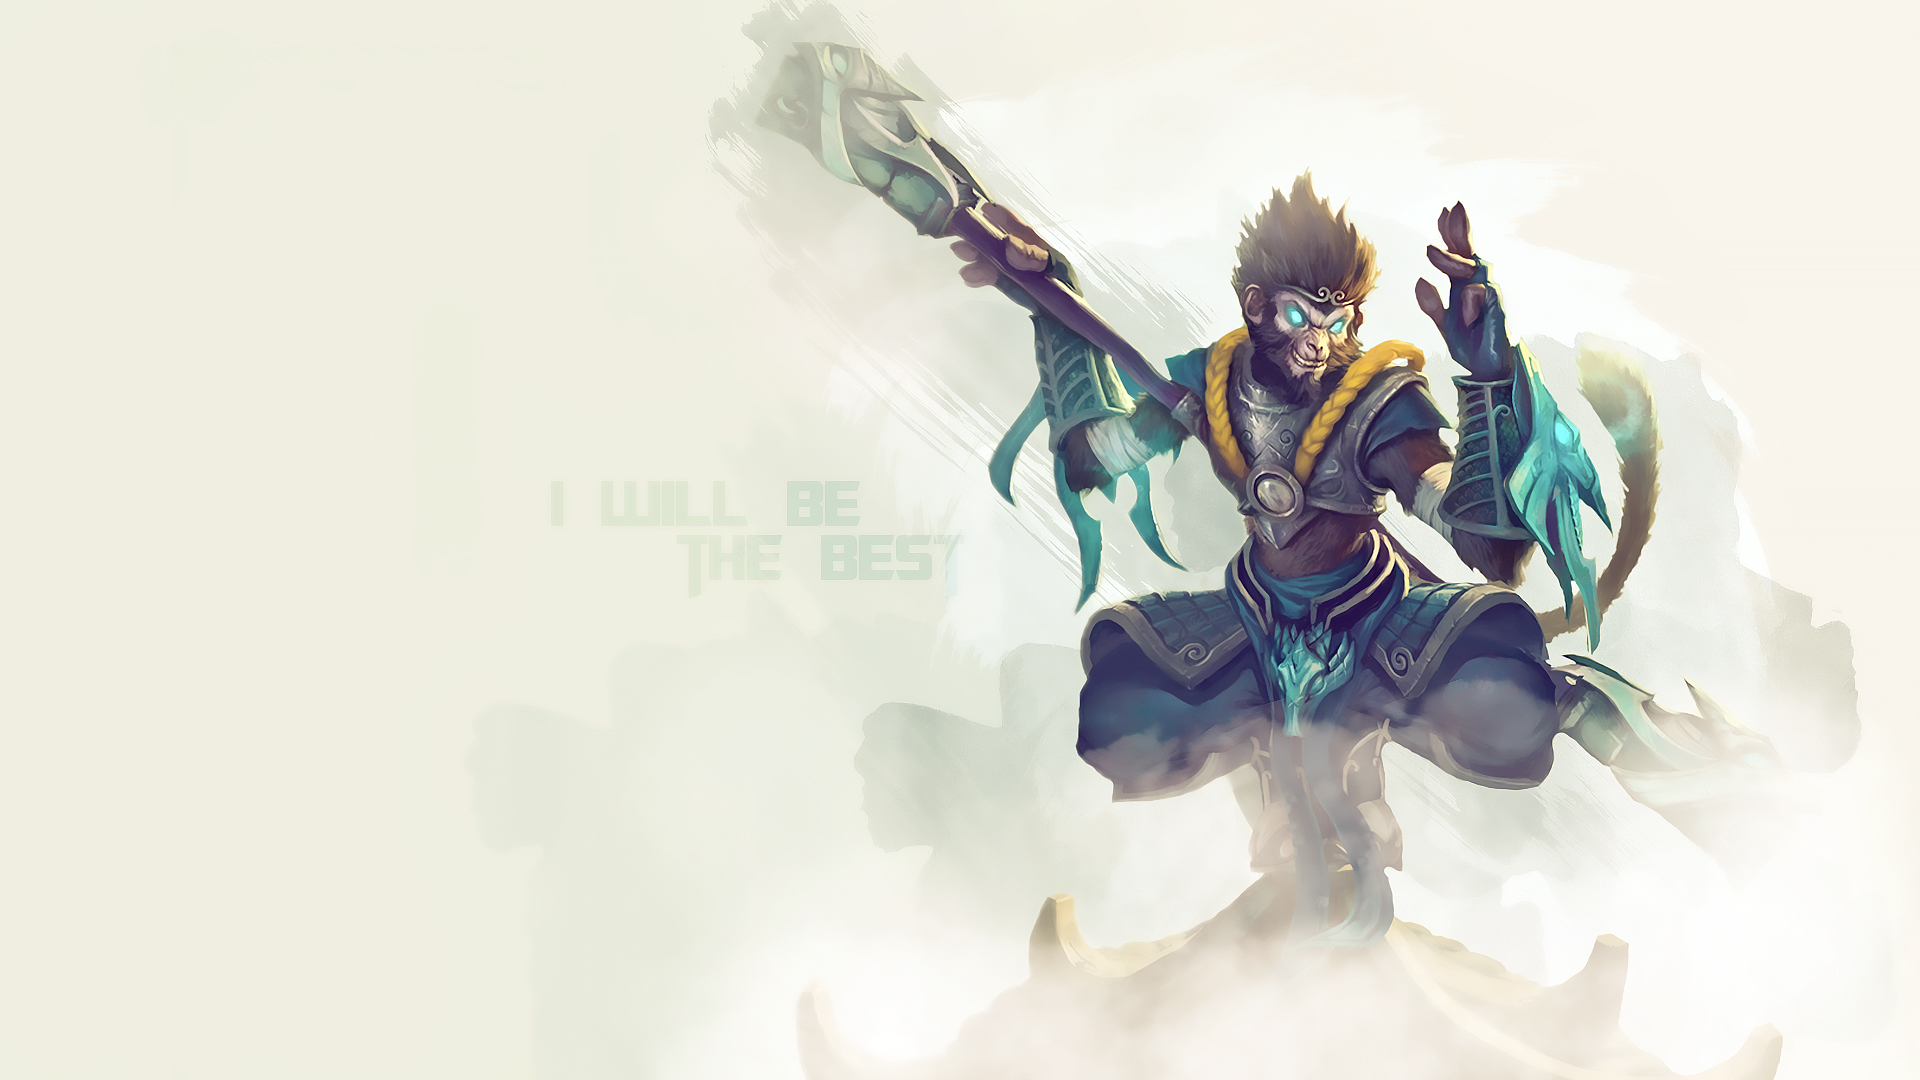 Wukong Wallpaper by Uberkayt